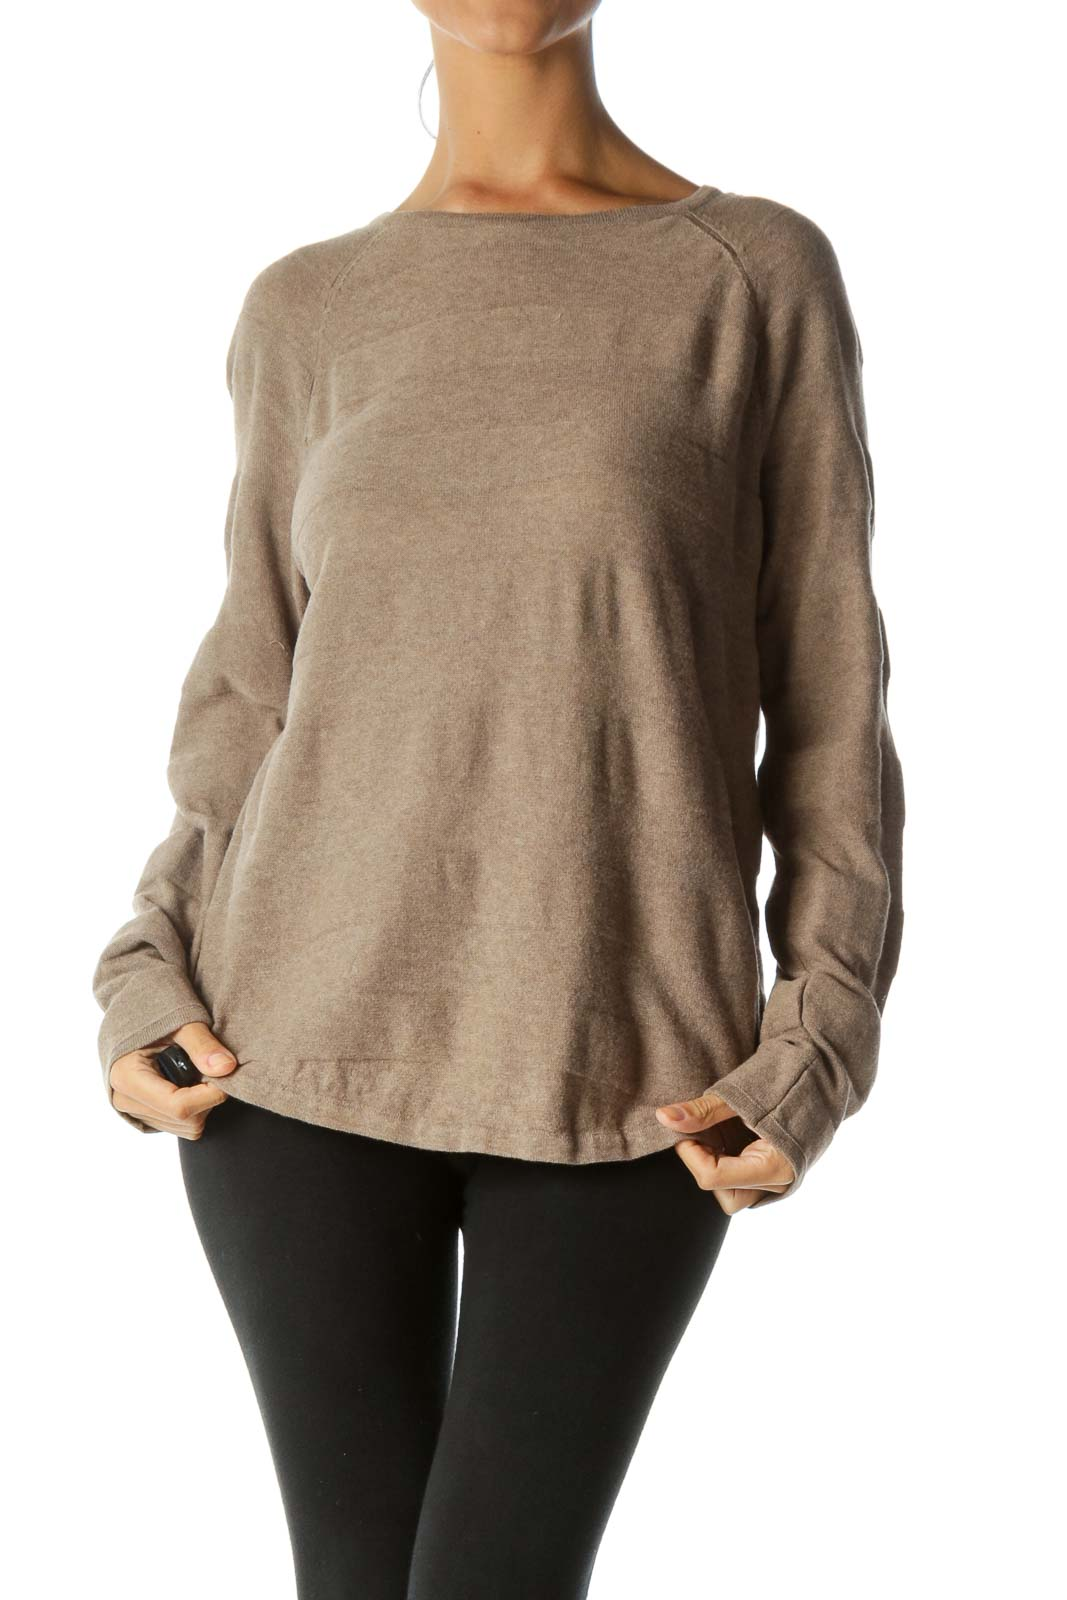 Beige Raised-Textured-Thick-Stripes Detail 100% Cotton Pull-On Sweater